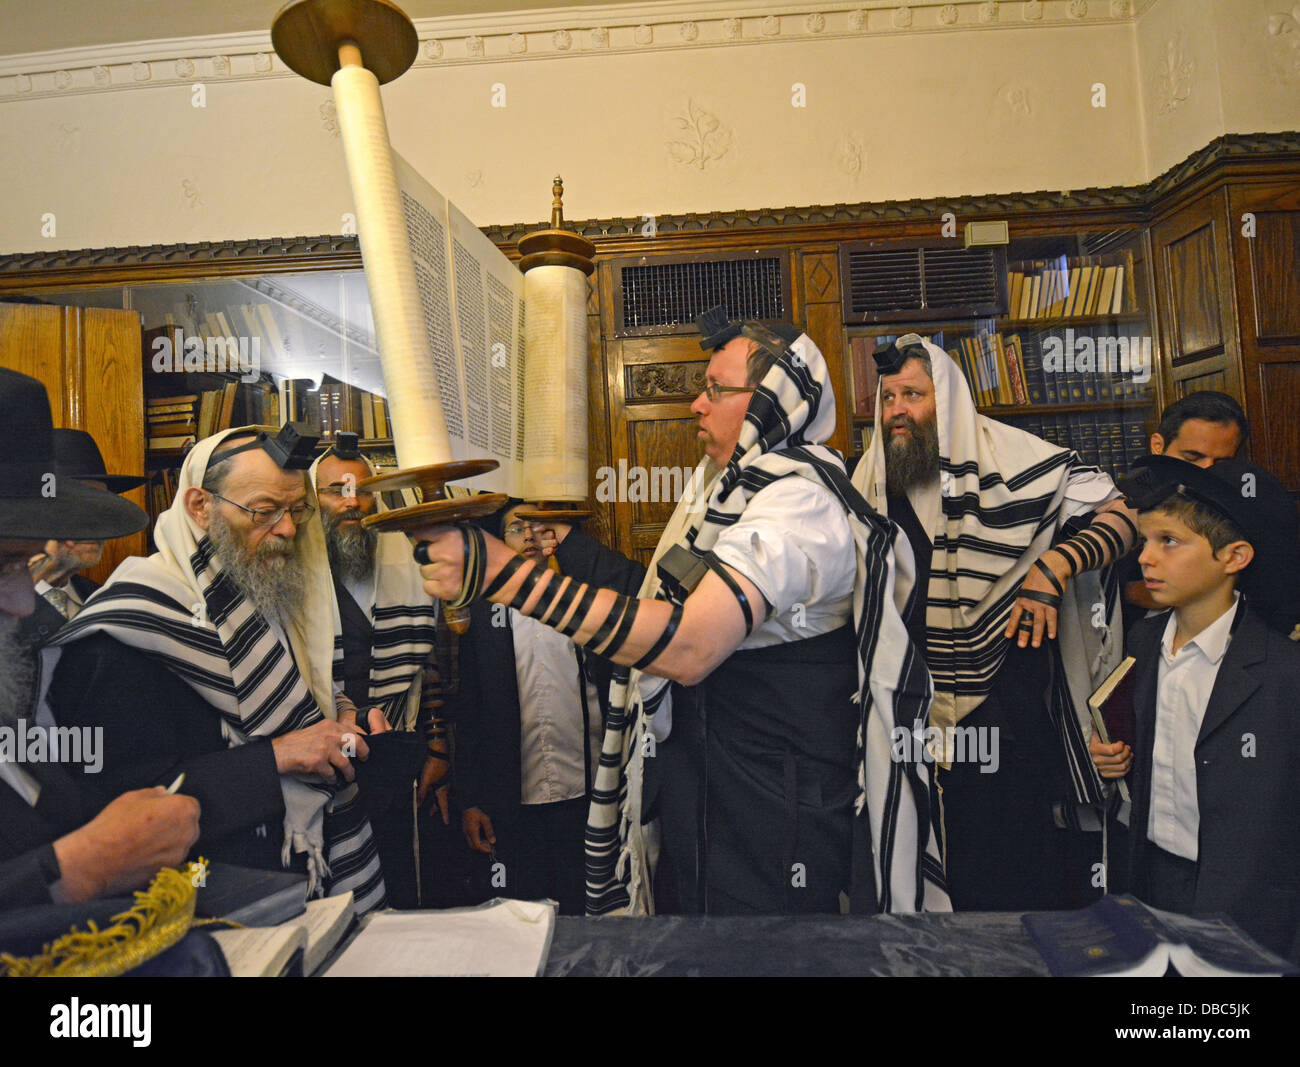 Thursday morning services in the Rebbe's study. The Torah being lifted prior to being closed and returned to - Stock Image